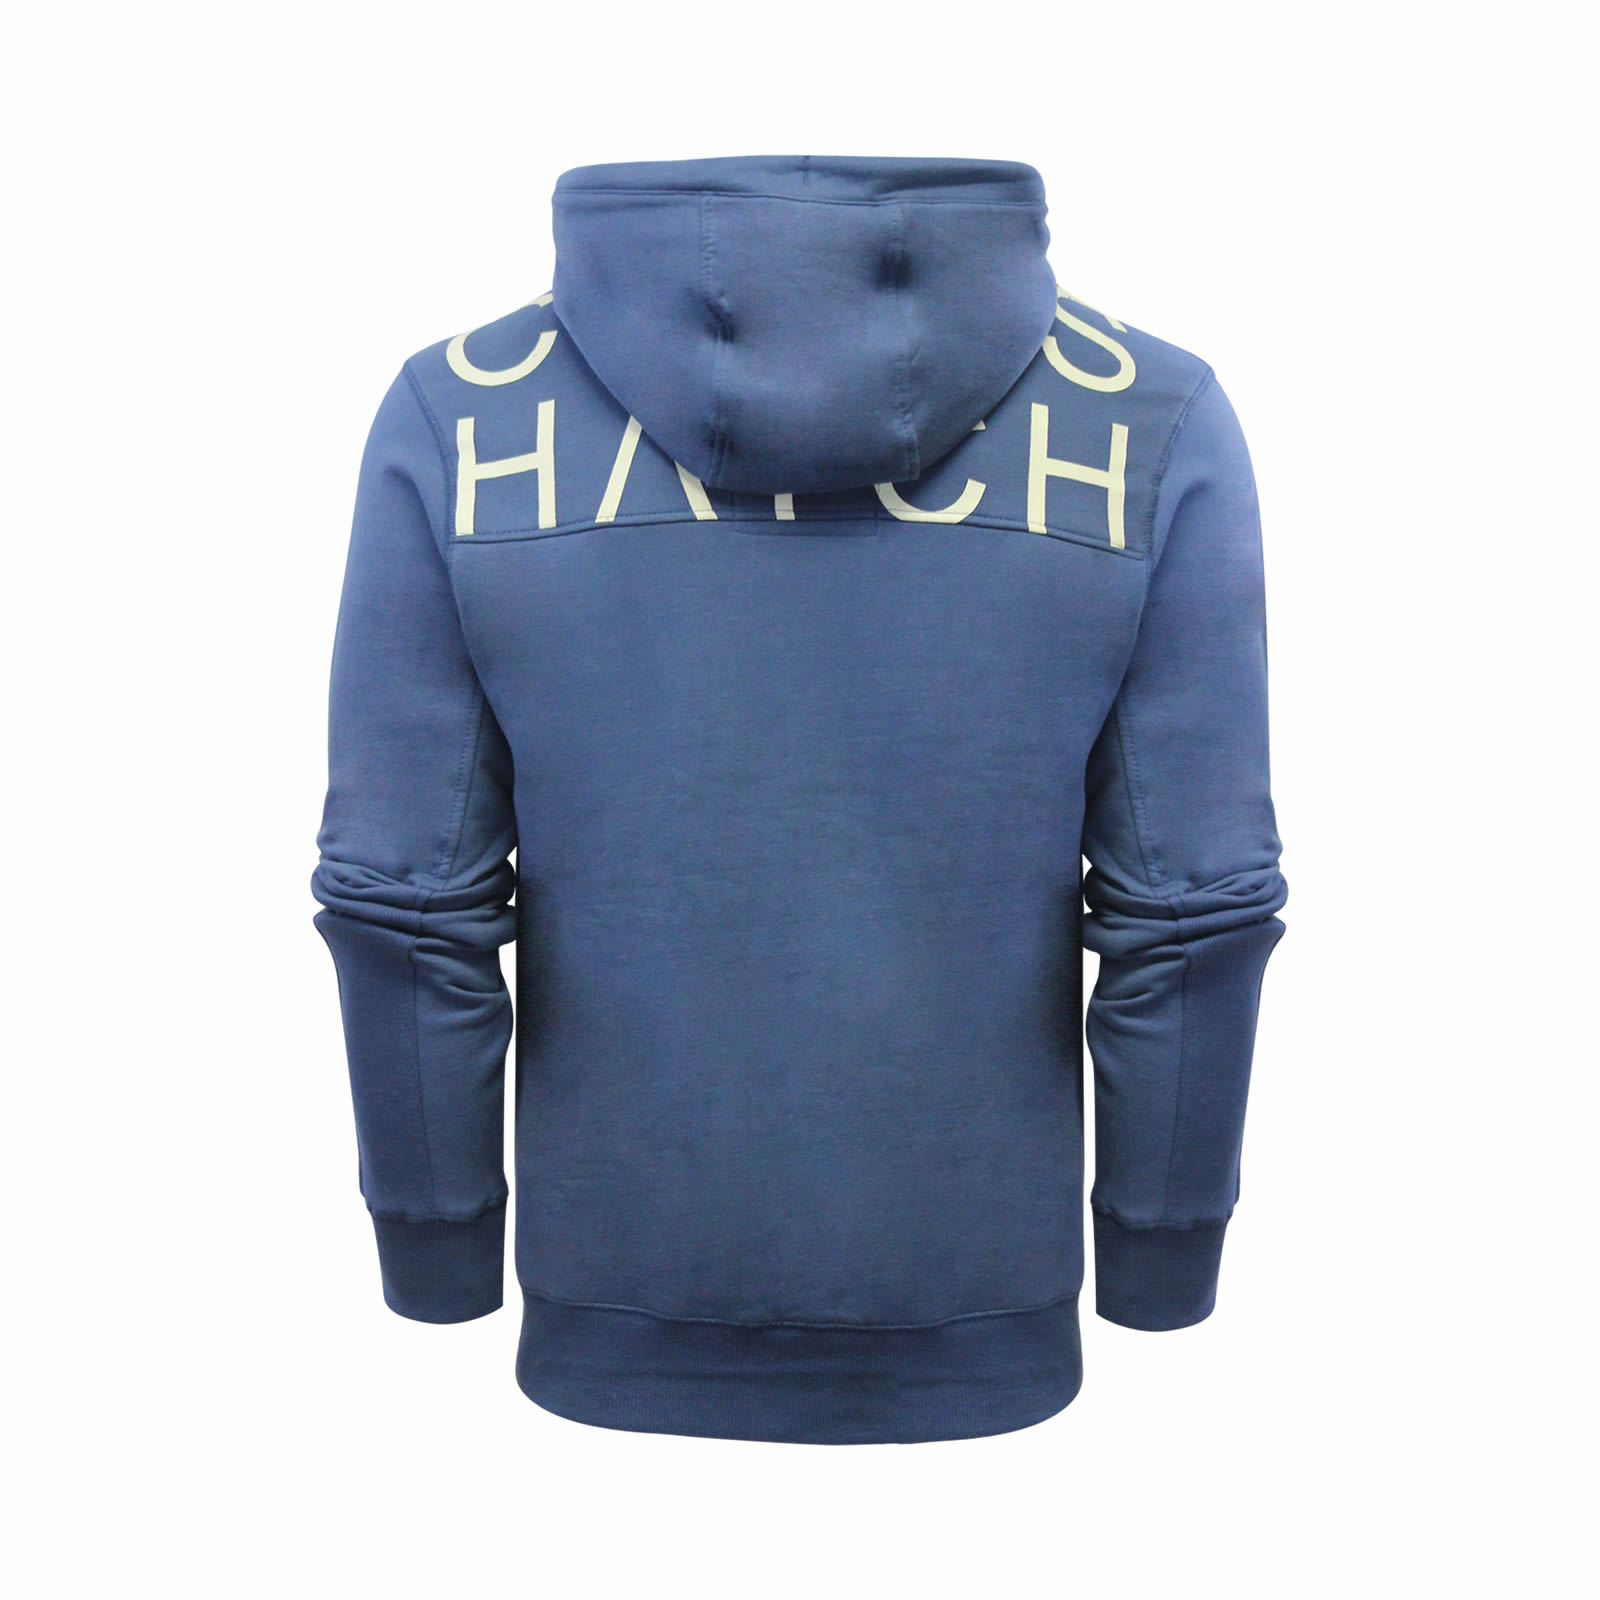 Mens-Hoodie-Crosshatch-Sunbirds-Cotton-Hooded-Pull-Over-Sweater thumbnail 7